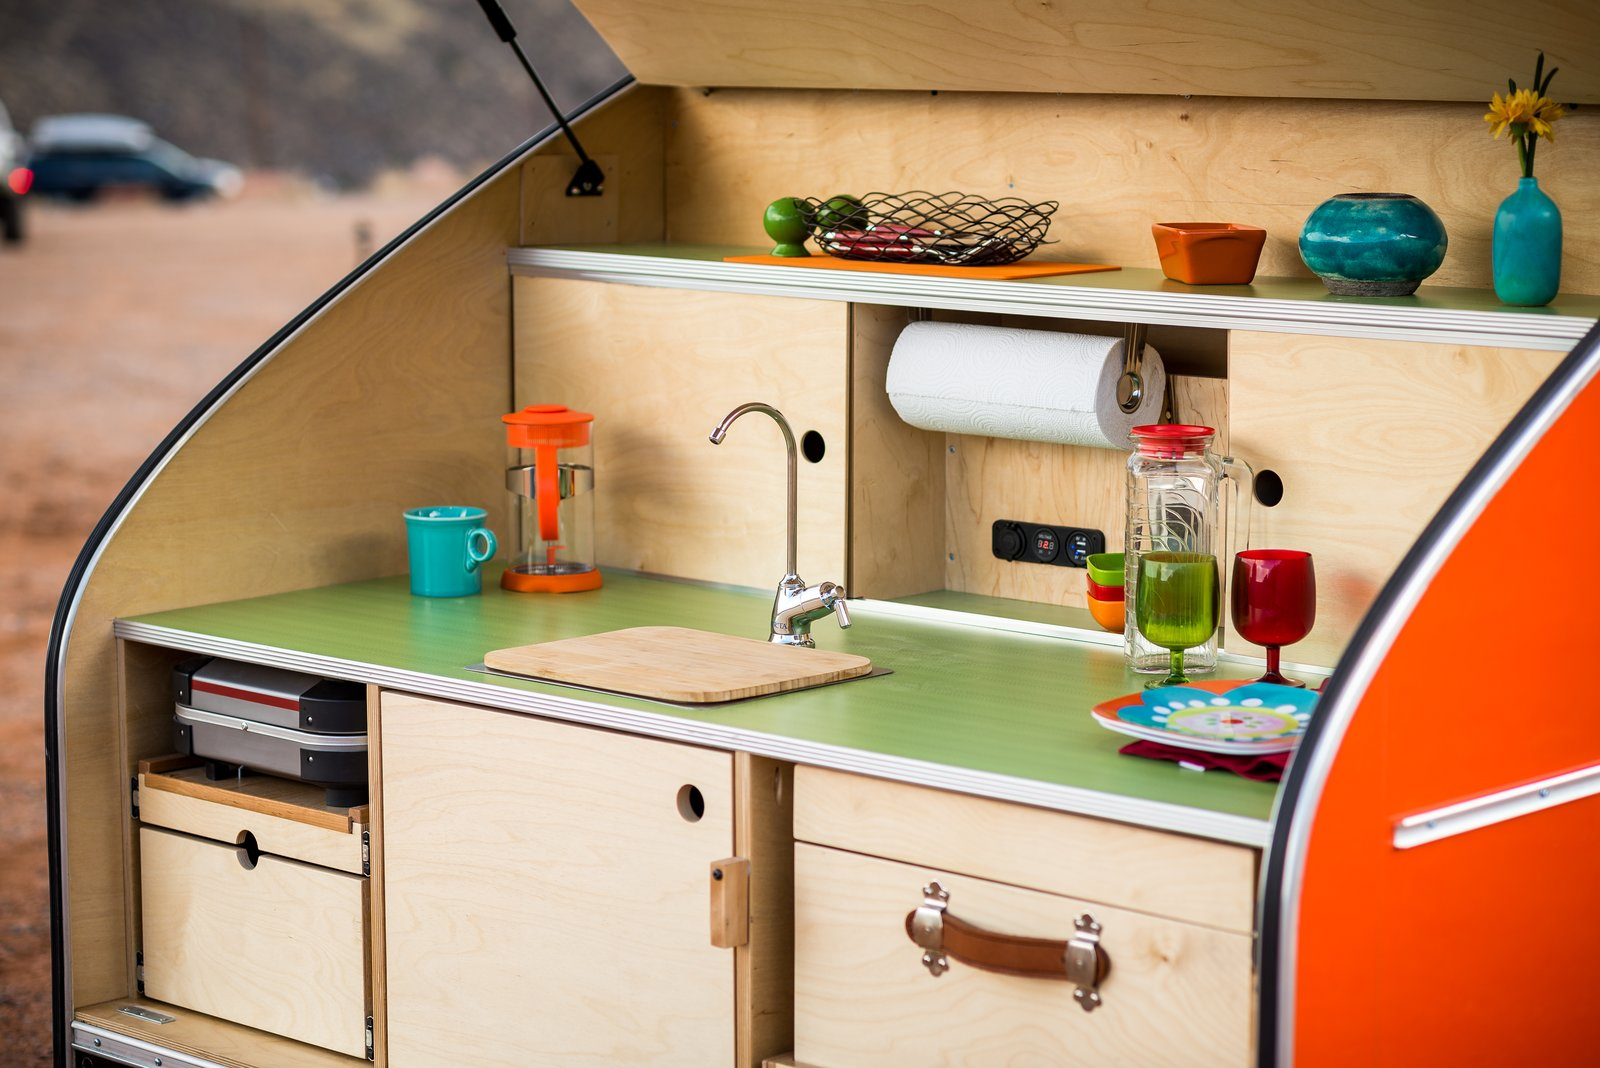 Kitchen, Wood, Wood, Drop In, and Wood The trailer features an integrated electrical system, running water, and a custom-built cooler.  Best Kitchen Wood Wood Drop In Wood Photos from Timberleaf Trailers